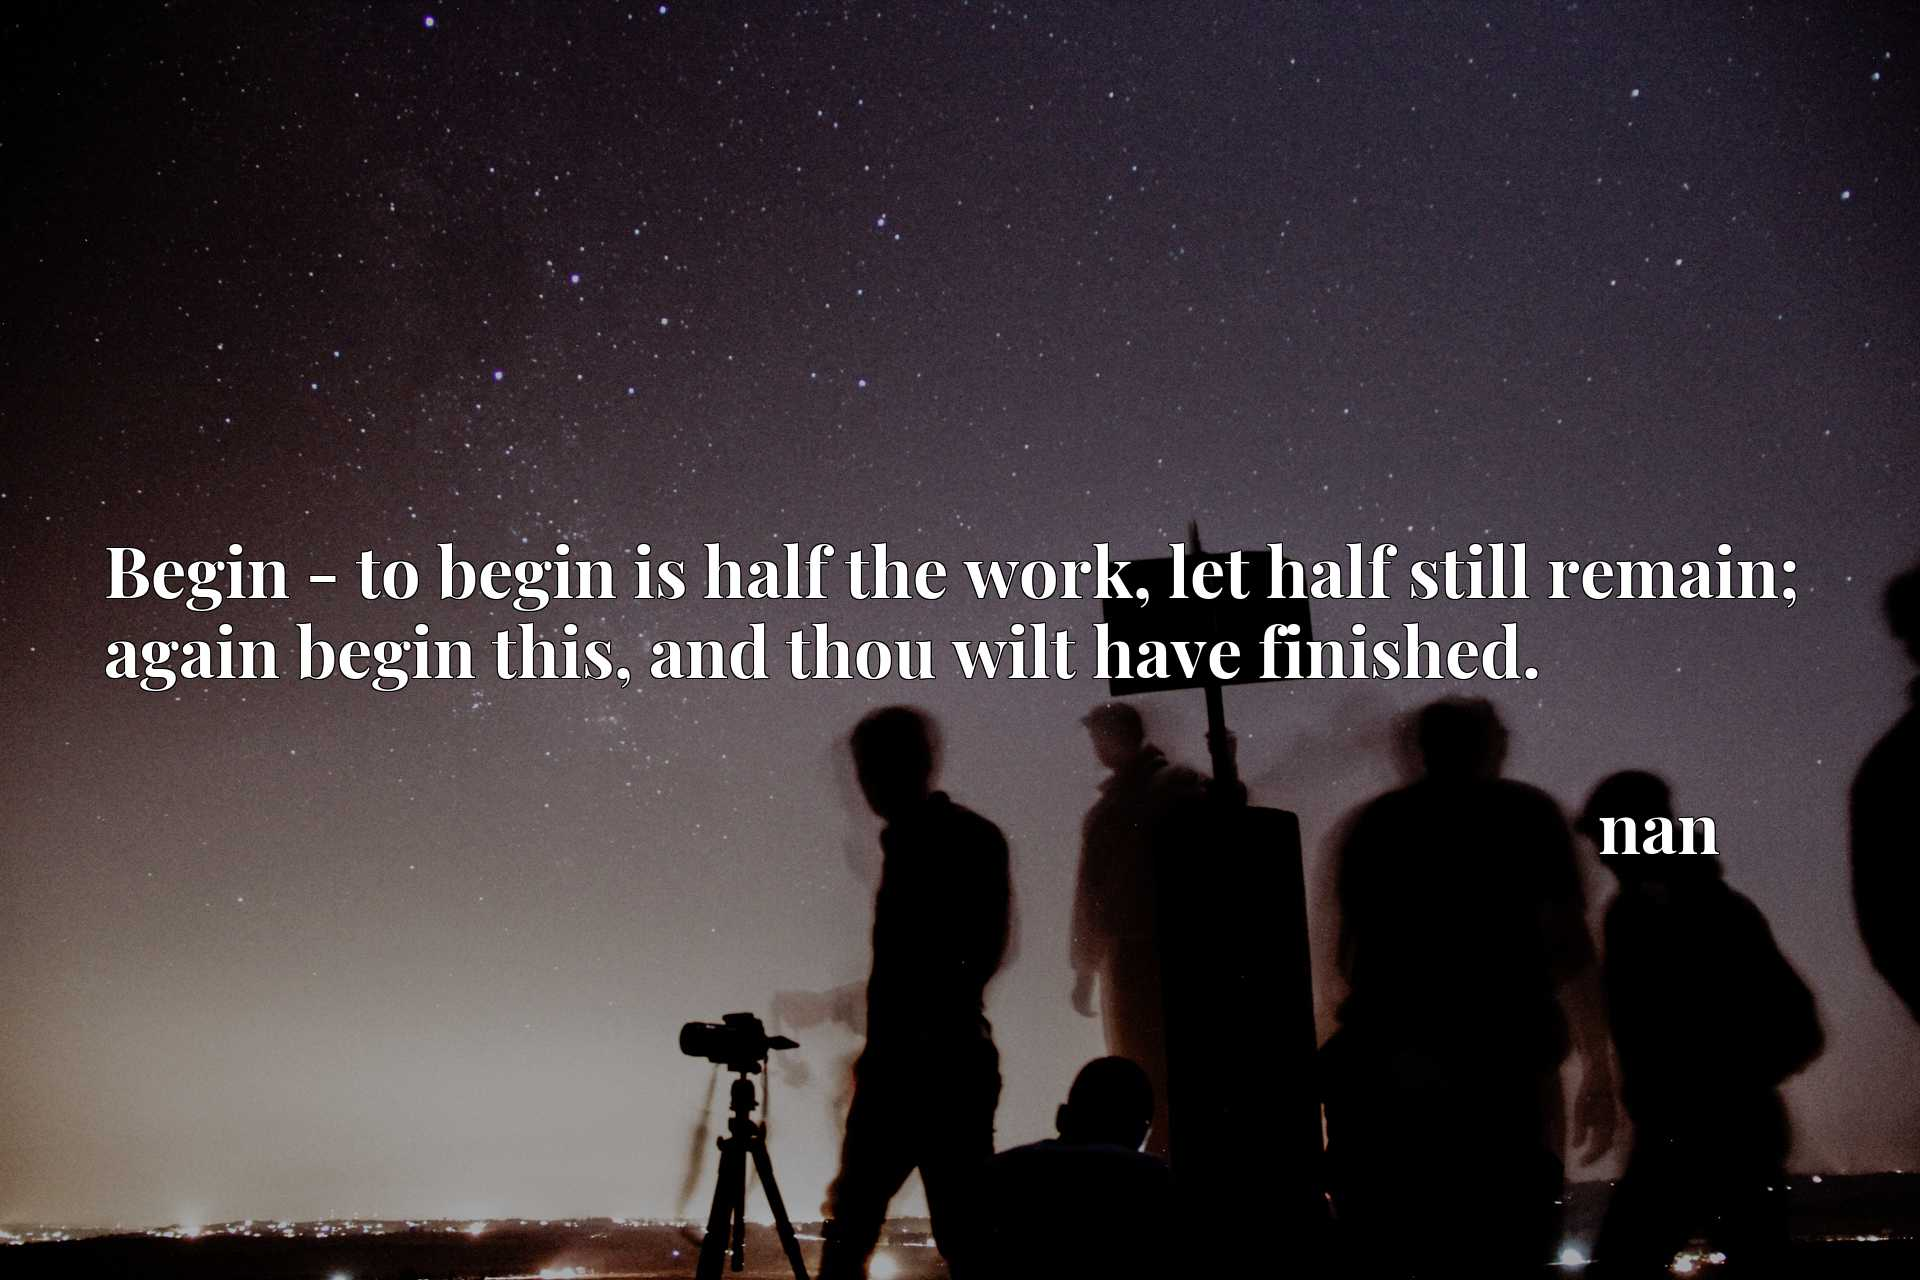 Begin - to begin is half the work, let half still remain; again begin this, and thou wilt have finished.